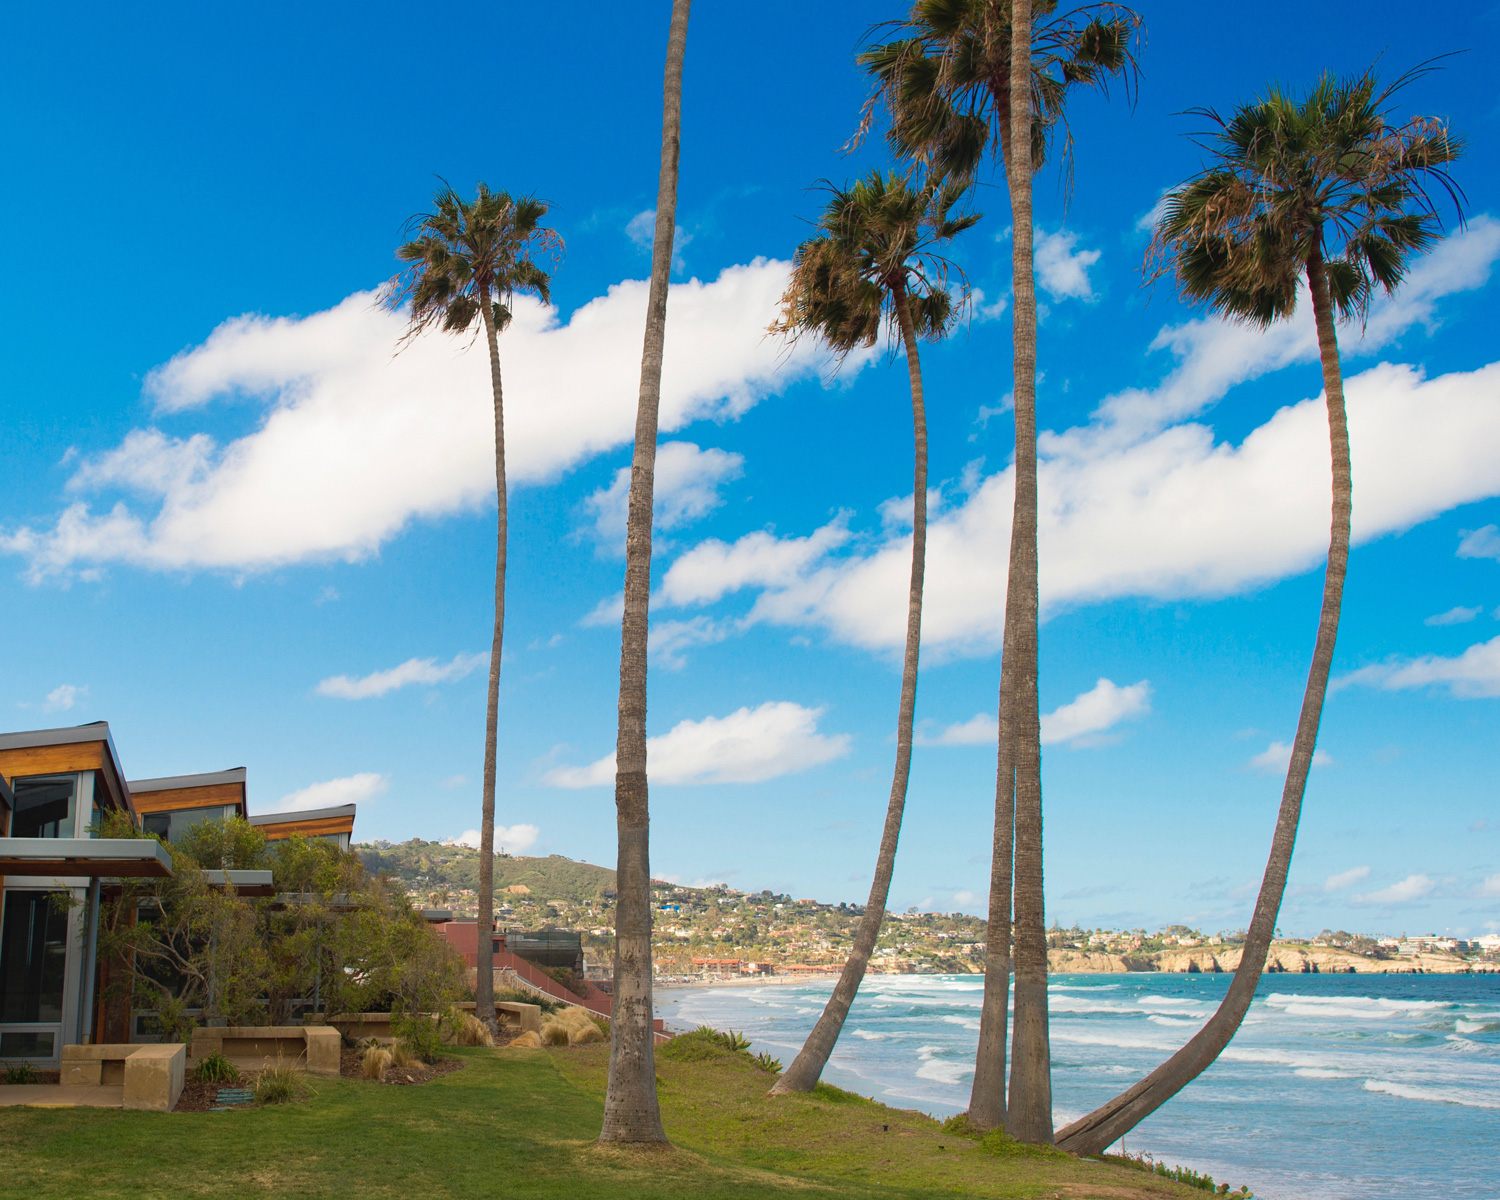 la-jolla-shores-beach-sd